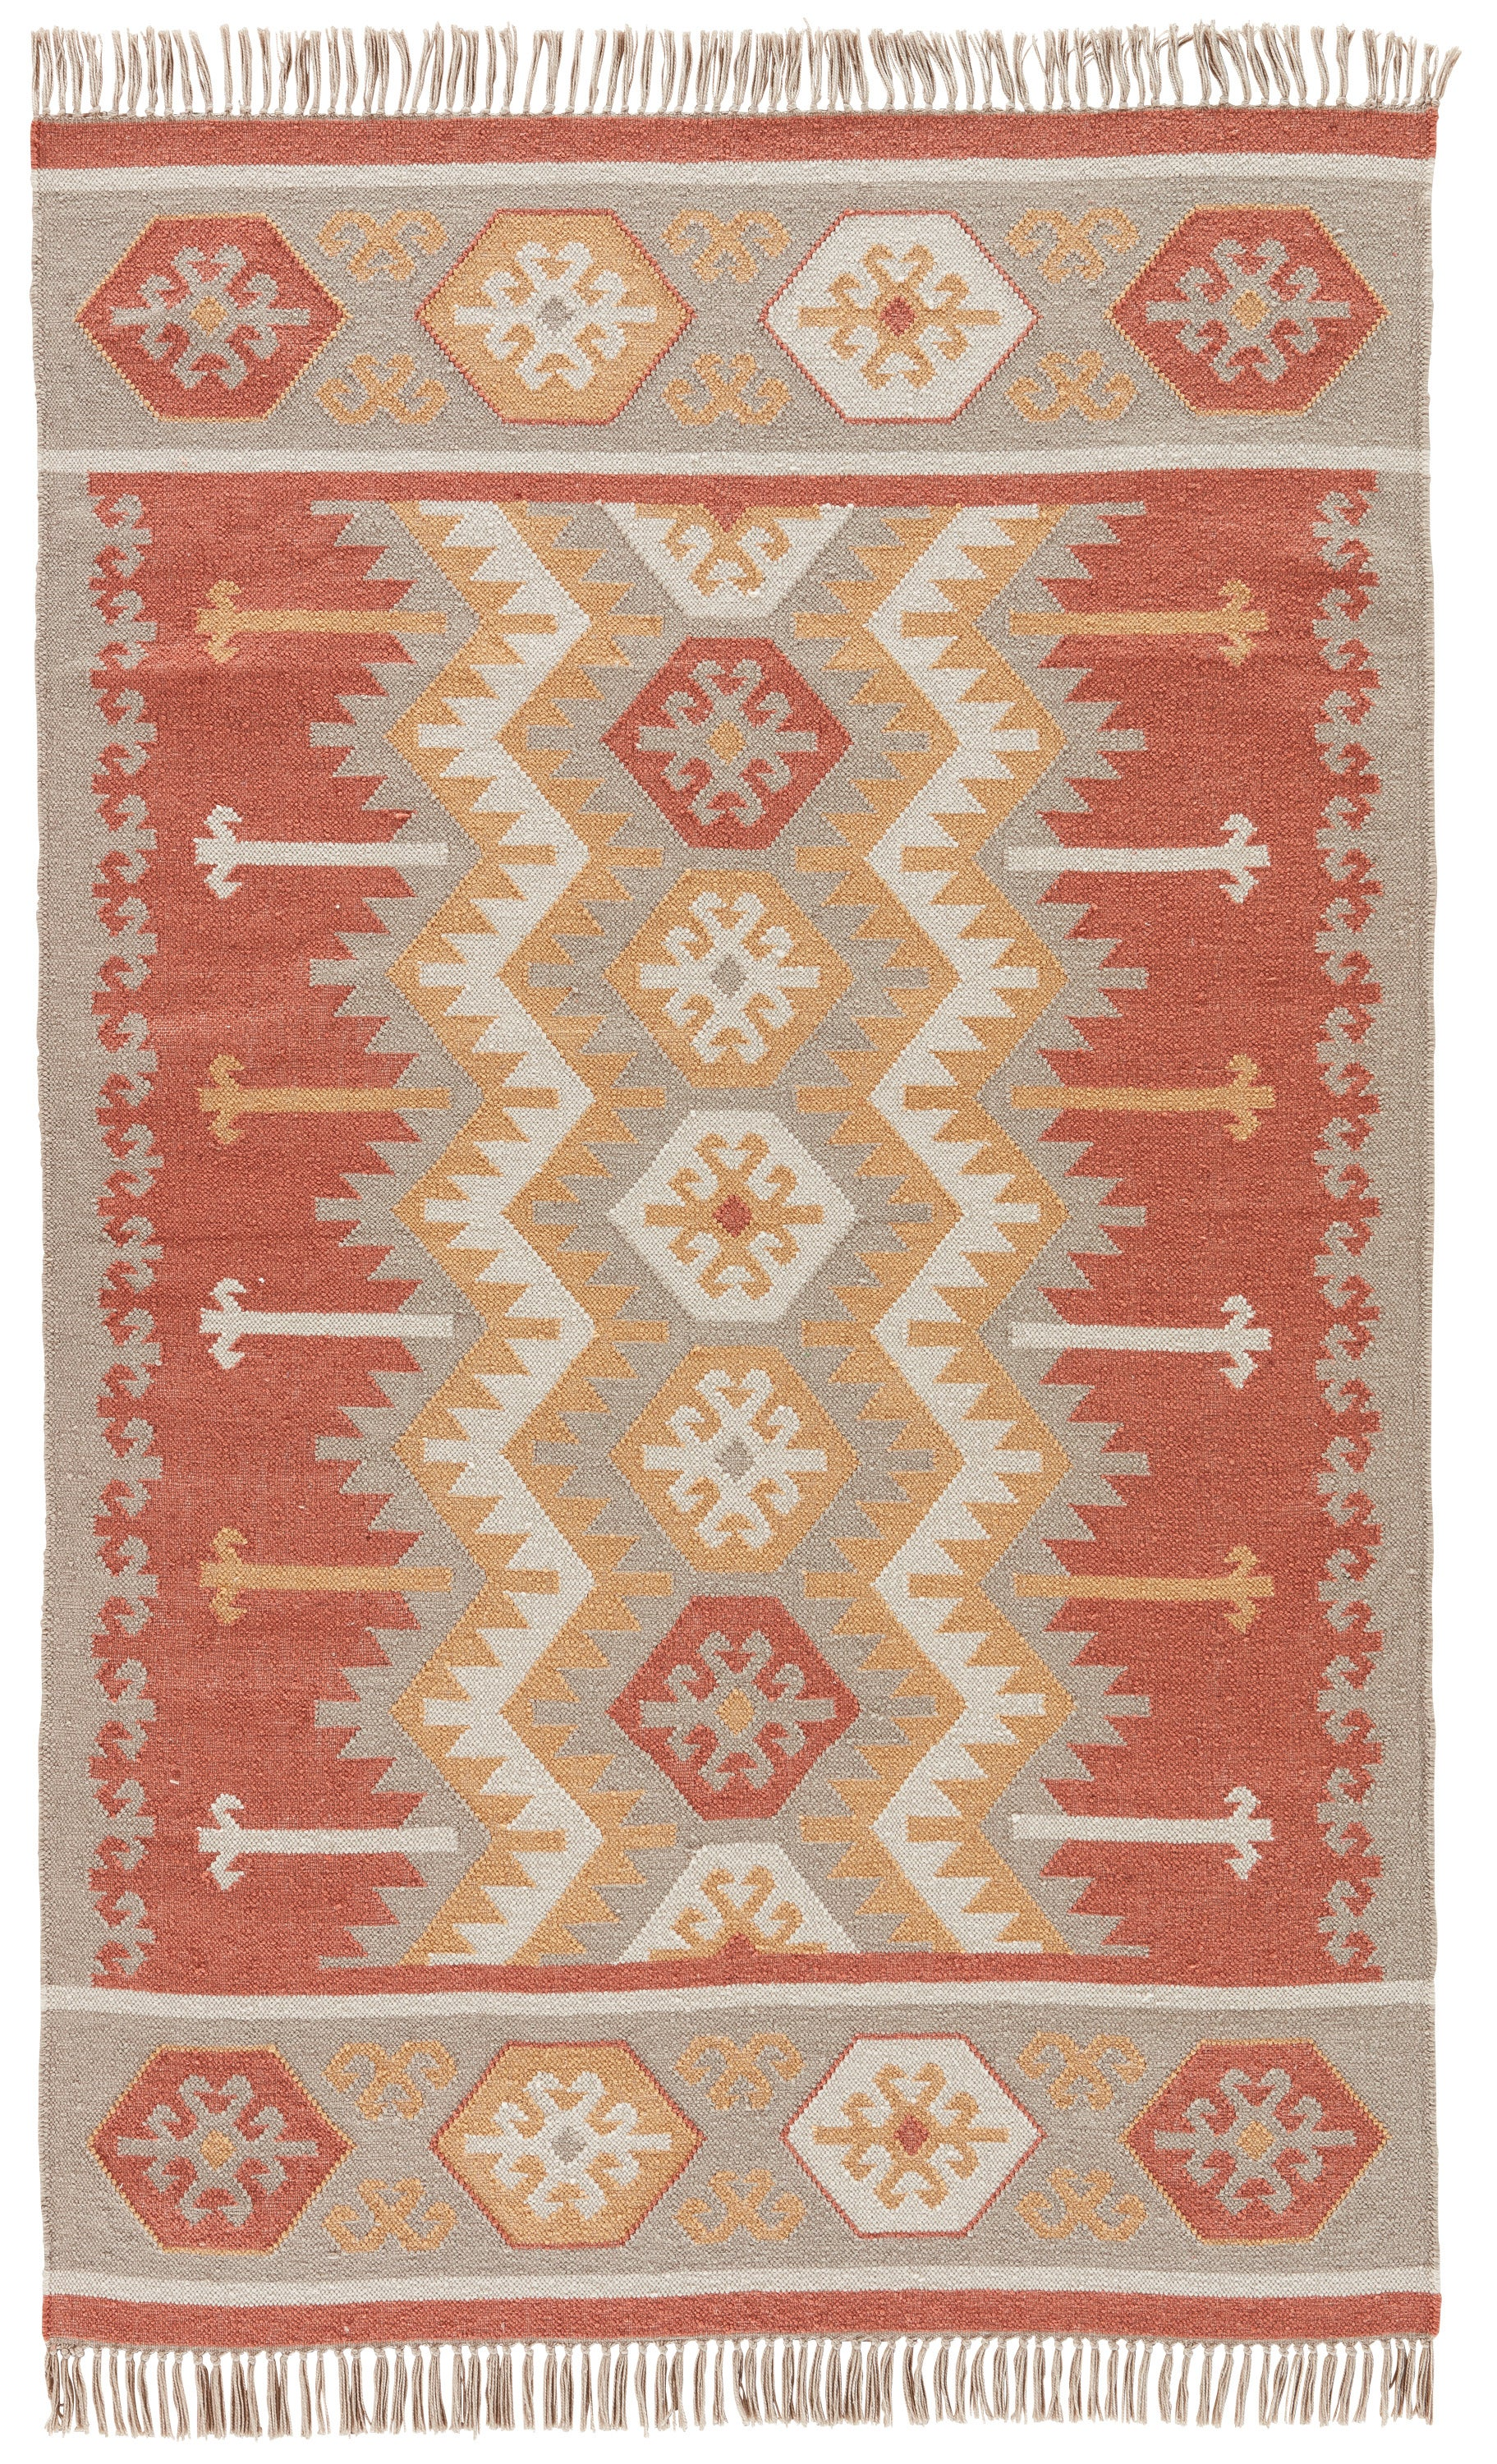 Rectangle 5x8 Orange Geometric Hand Woven Synthetics Southwestern recommended for Bedroom, Bathroom, Outdoor, Dining Room, Office, Hallway, Living Room